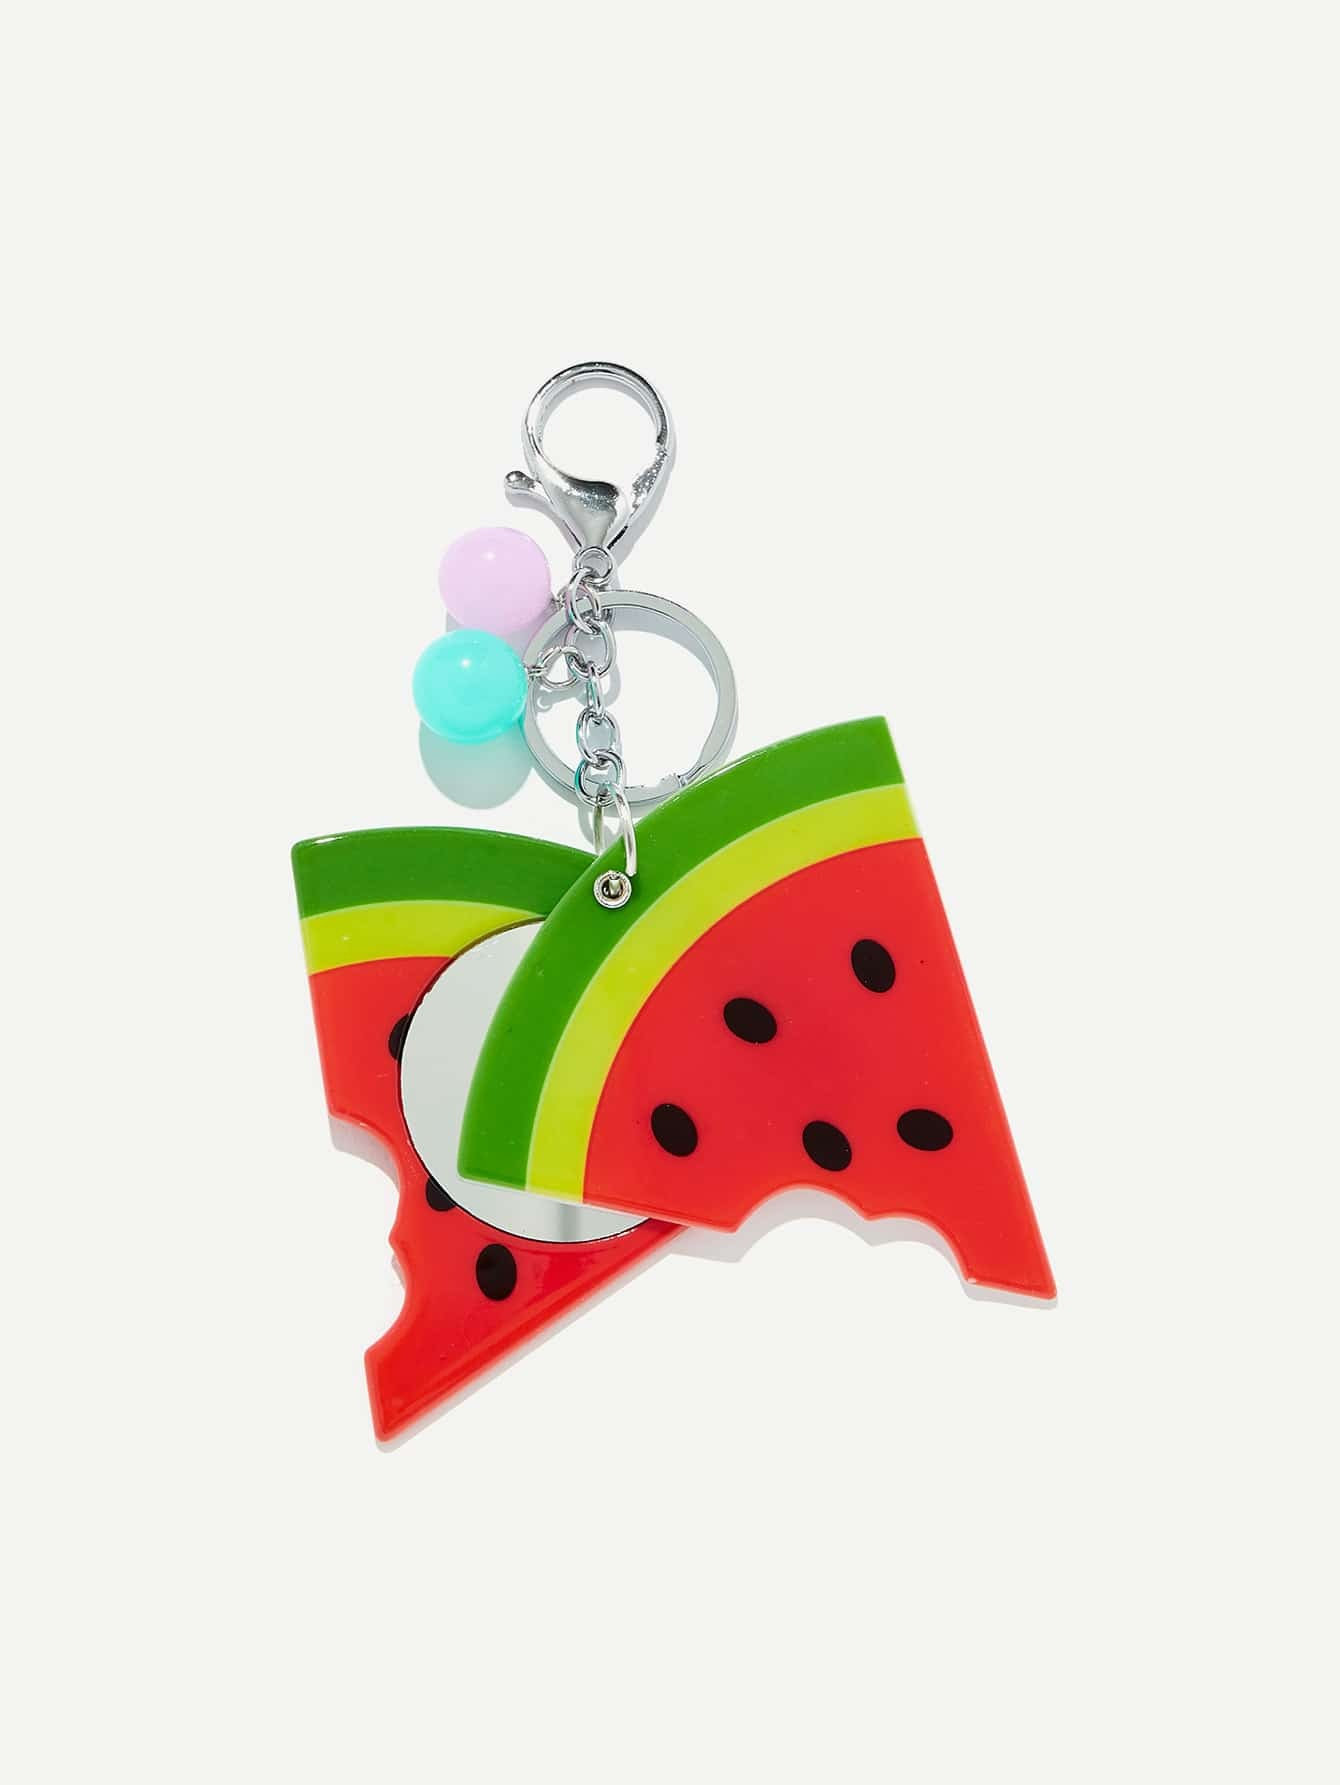 Random Color Ball Watermelon Shaped Keychain unique skateboard shaped bottle opener keychain random color